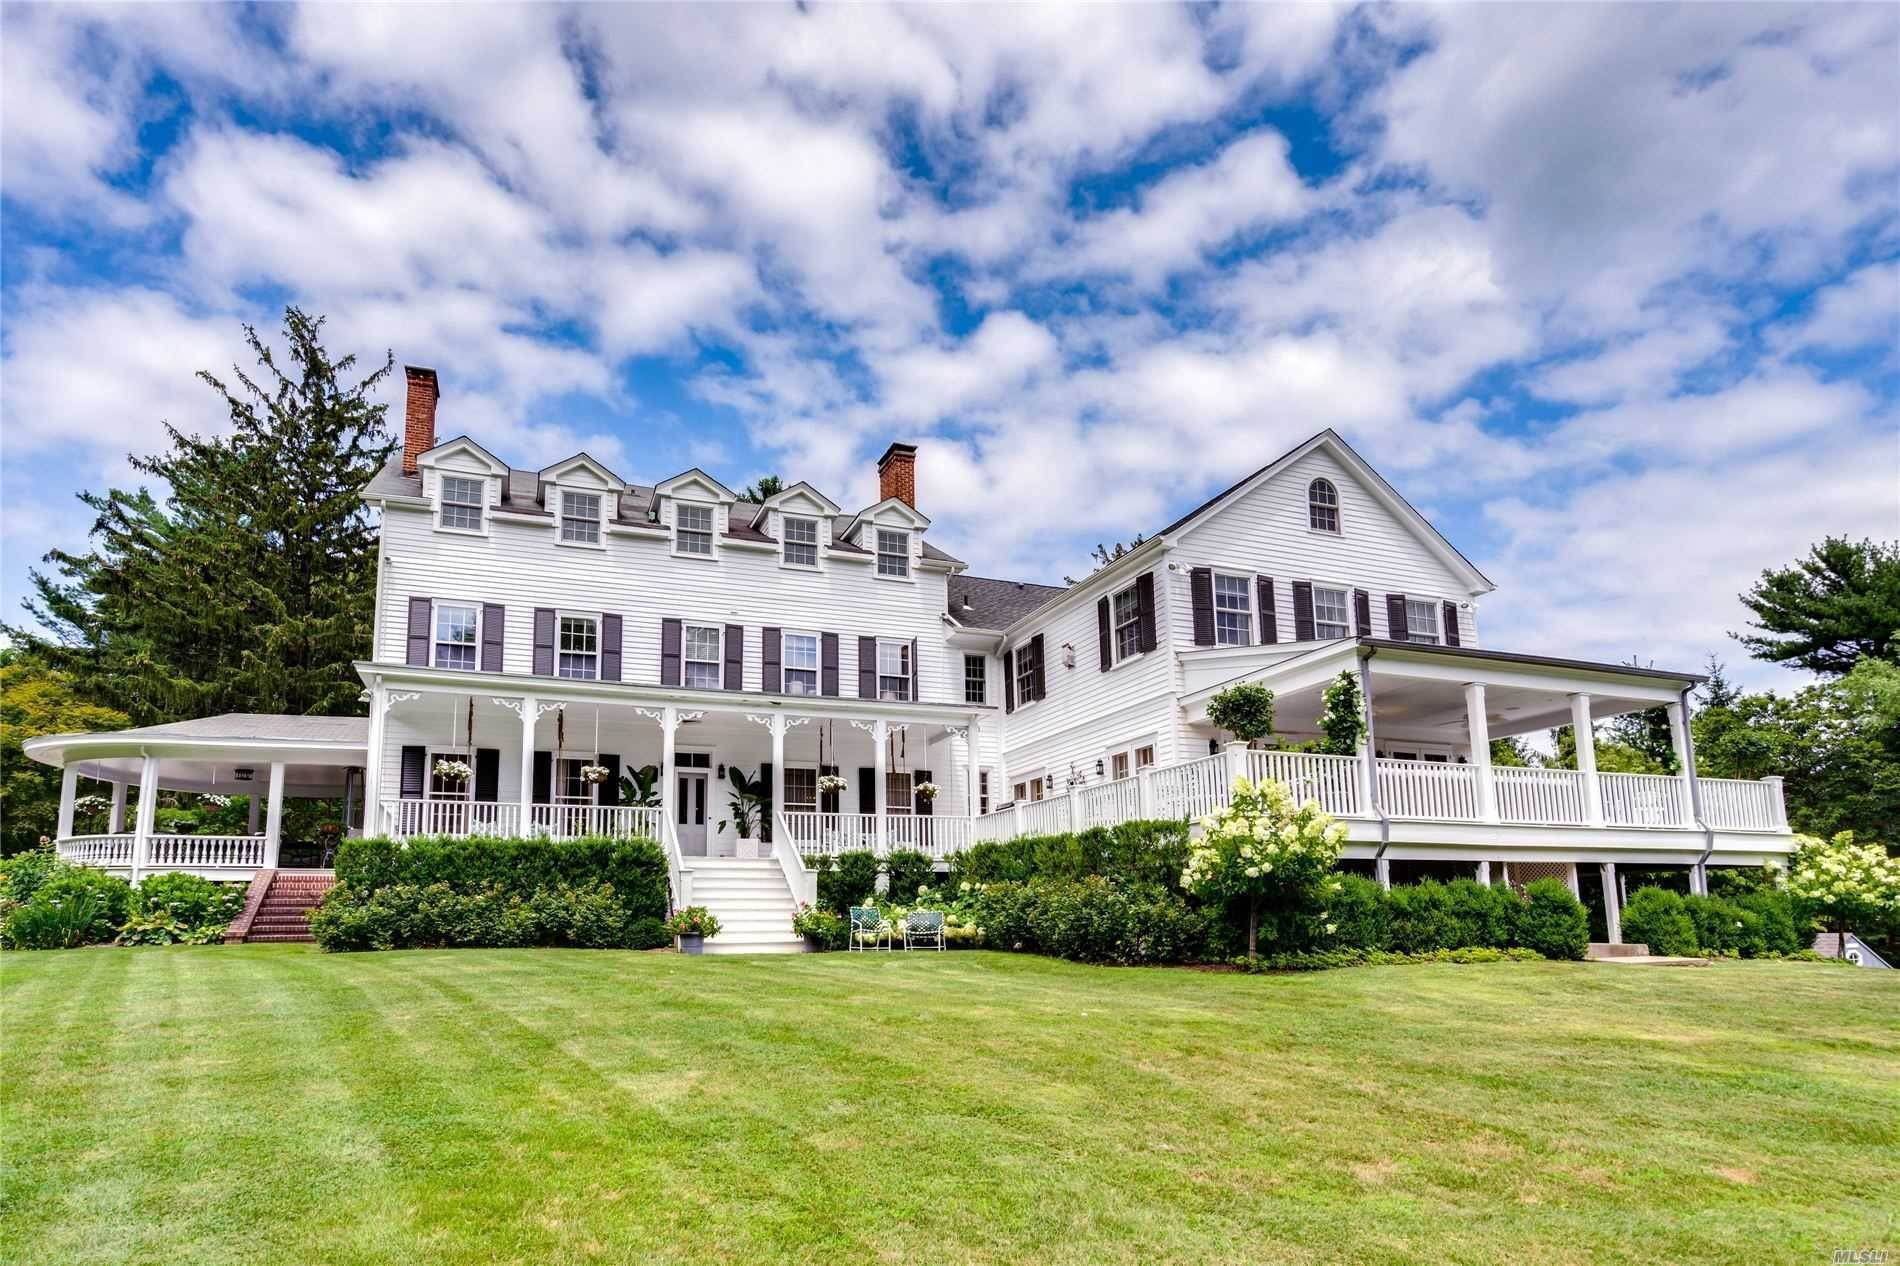 Residential for Sale at 9 Ludlam Lane Locust Valley, New York 11560 United States